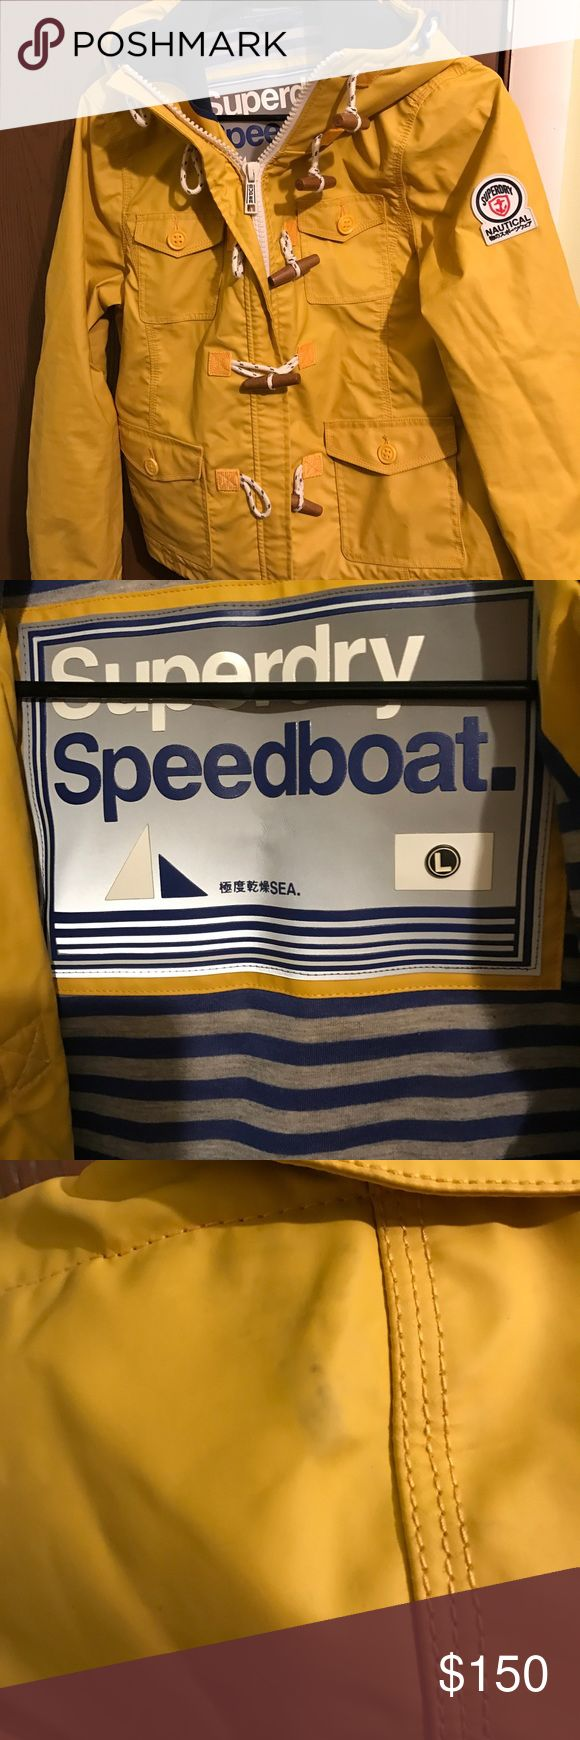 Superdry yellow Speedboat raincoat Great quality coat. Has a nice, warm lining for when you don't want to get wet or cold! 💧. Has a scuff in the hood from hanging it up. Wrinkled from storage. Barely worn. Came direct from Superdry website. Superdry Jackets & Coats